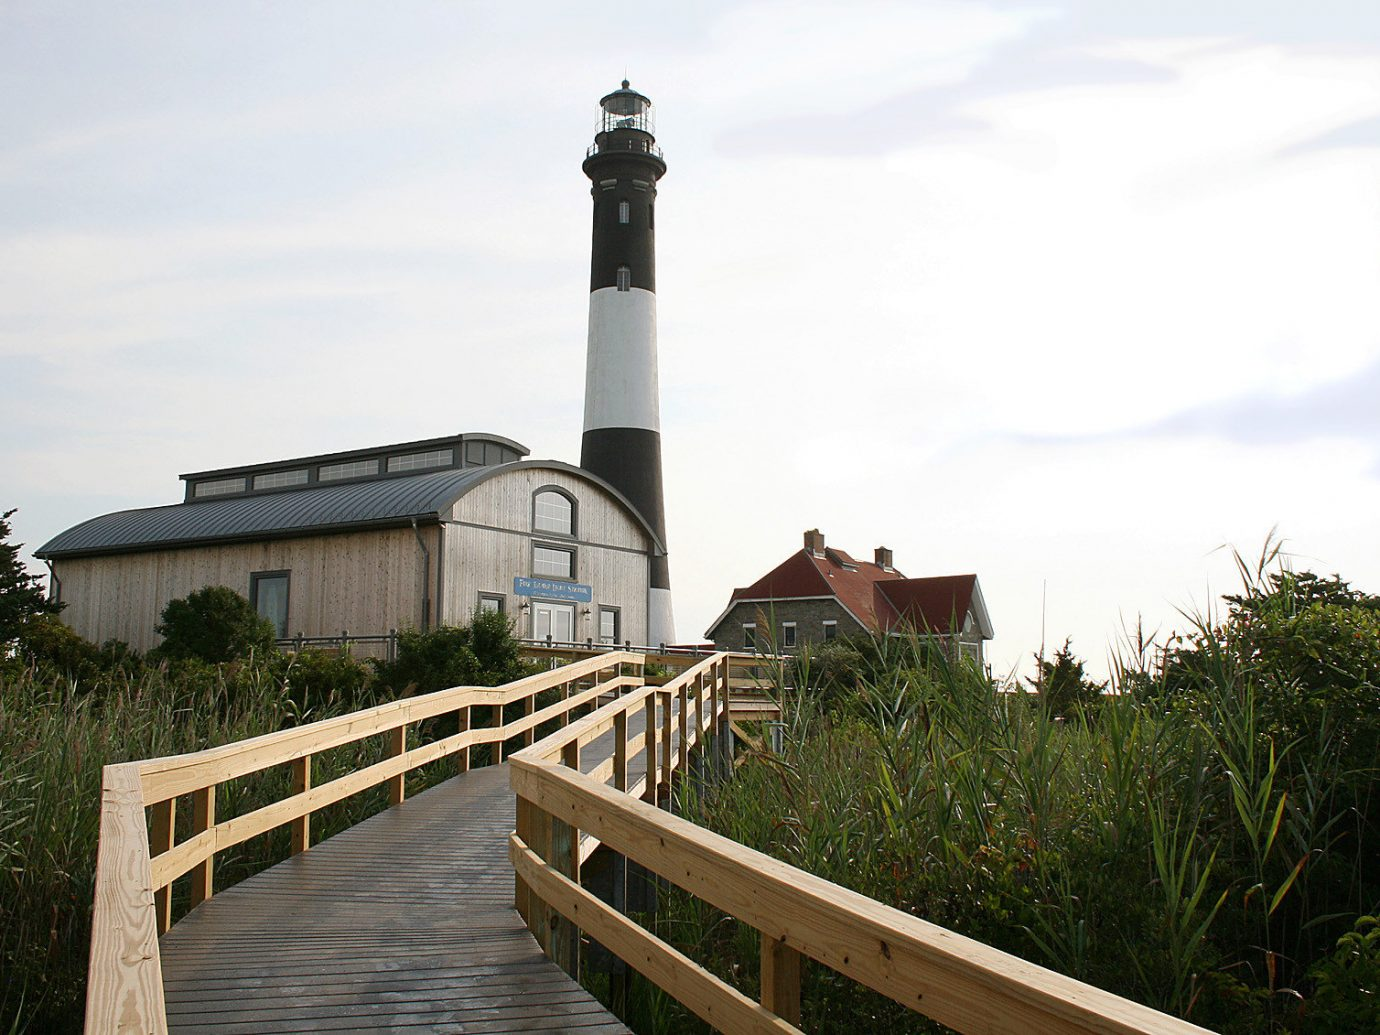 boardwalk Buildings Fog Greenery isolation lighthouse remote Scenic views Trip Ideas view outdoor sky tree building tower wooden waterway Coast walkway stone